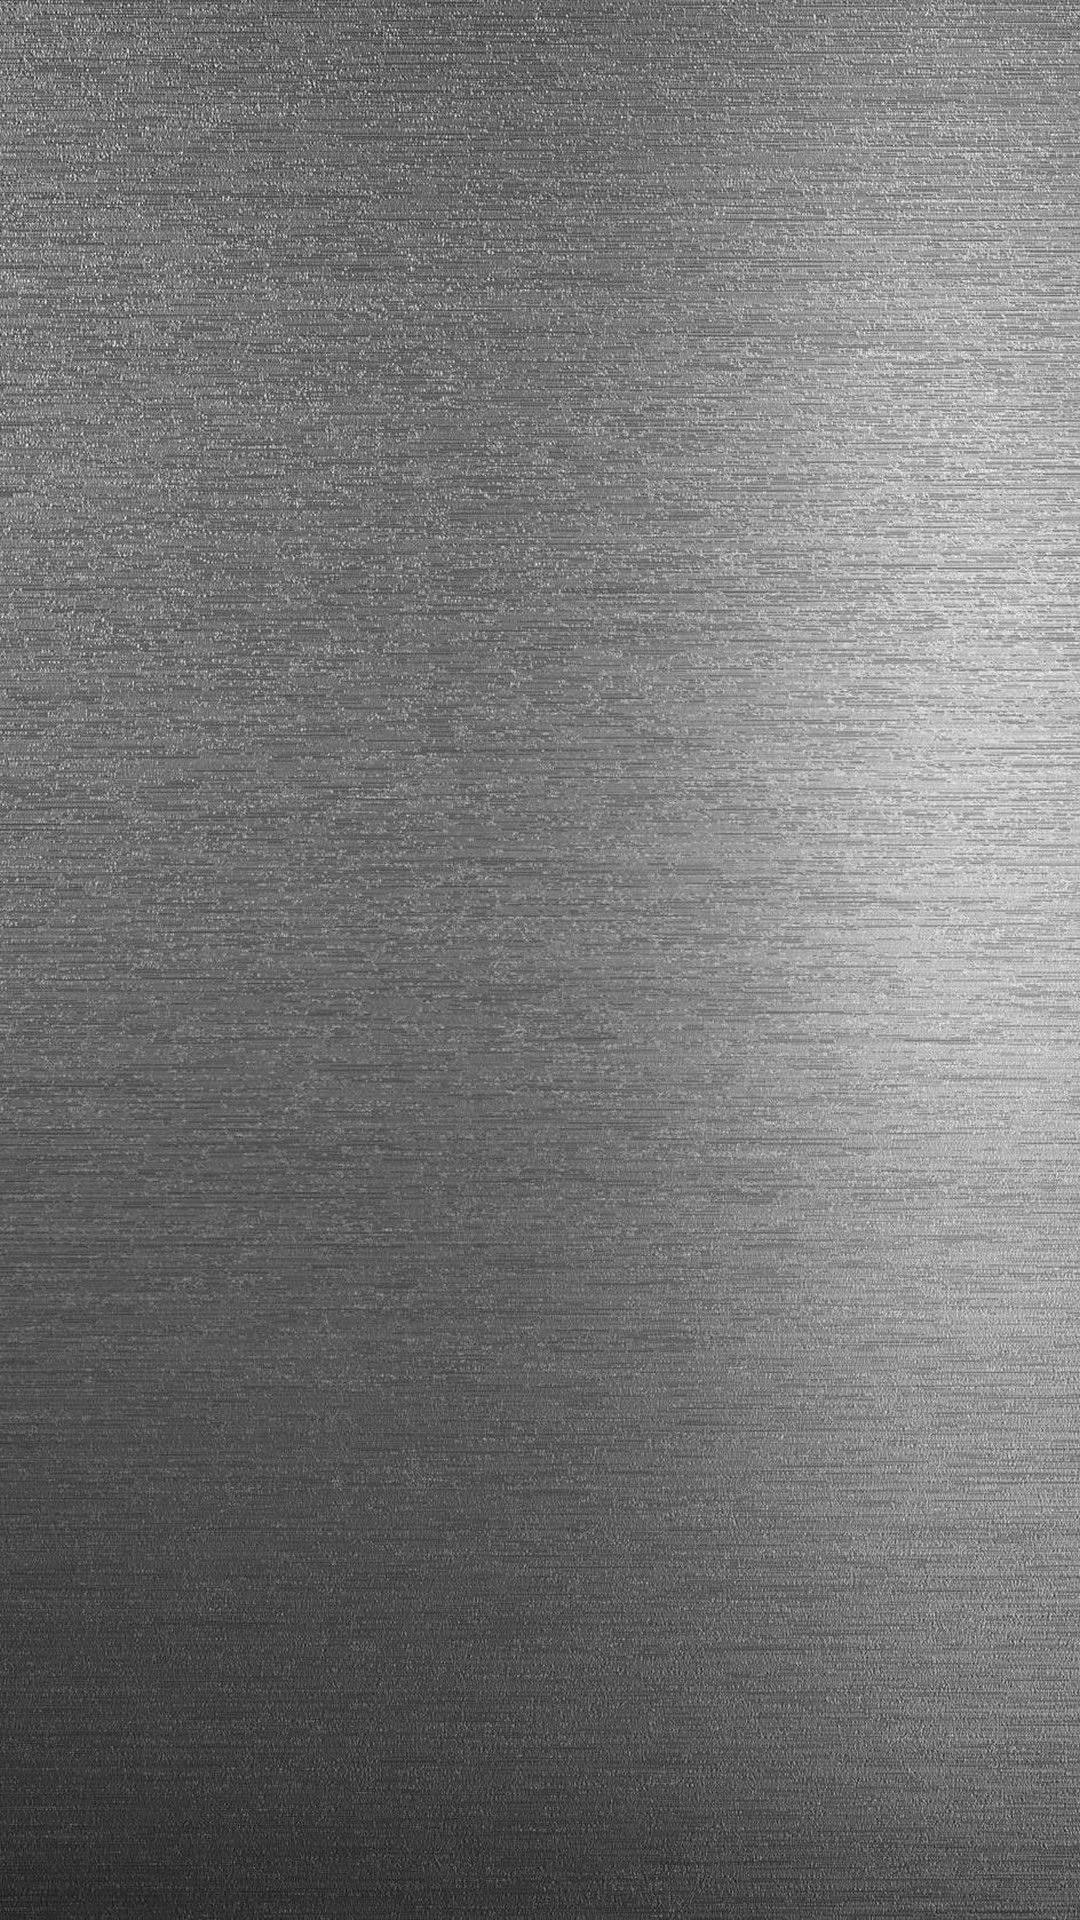 Gray Best iPhone Wallpaper Grey wallpaper phone, Grey